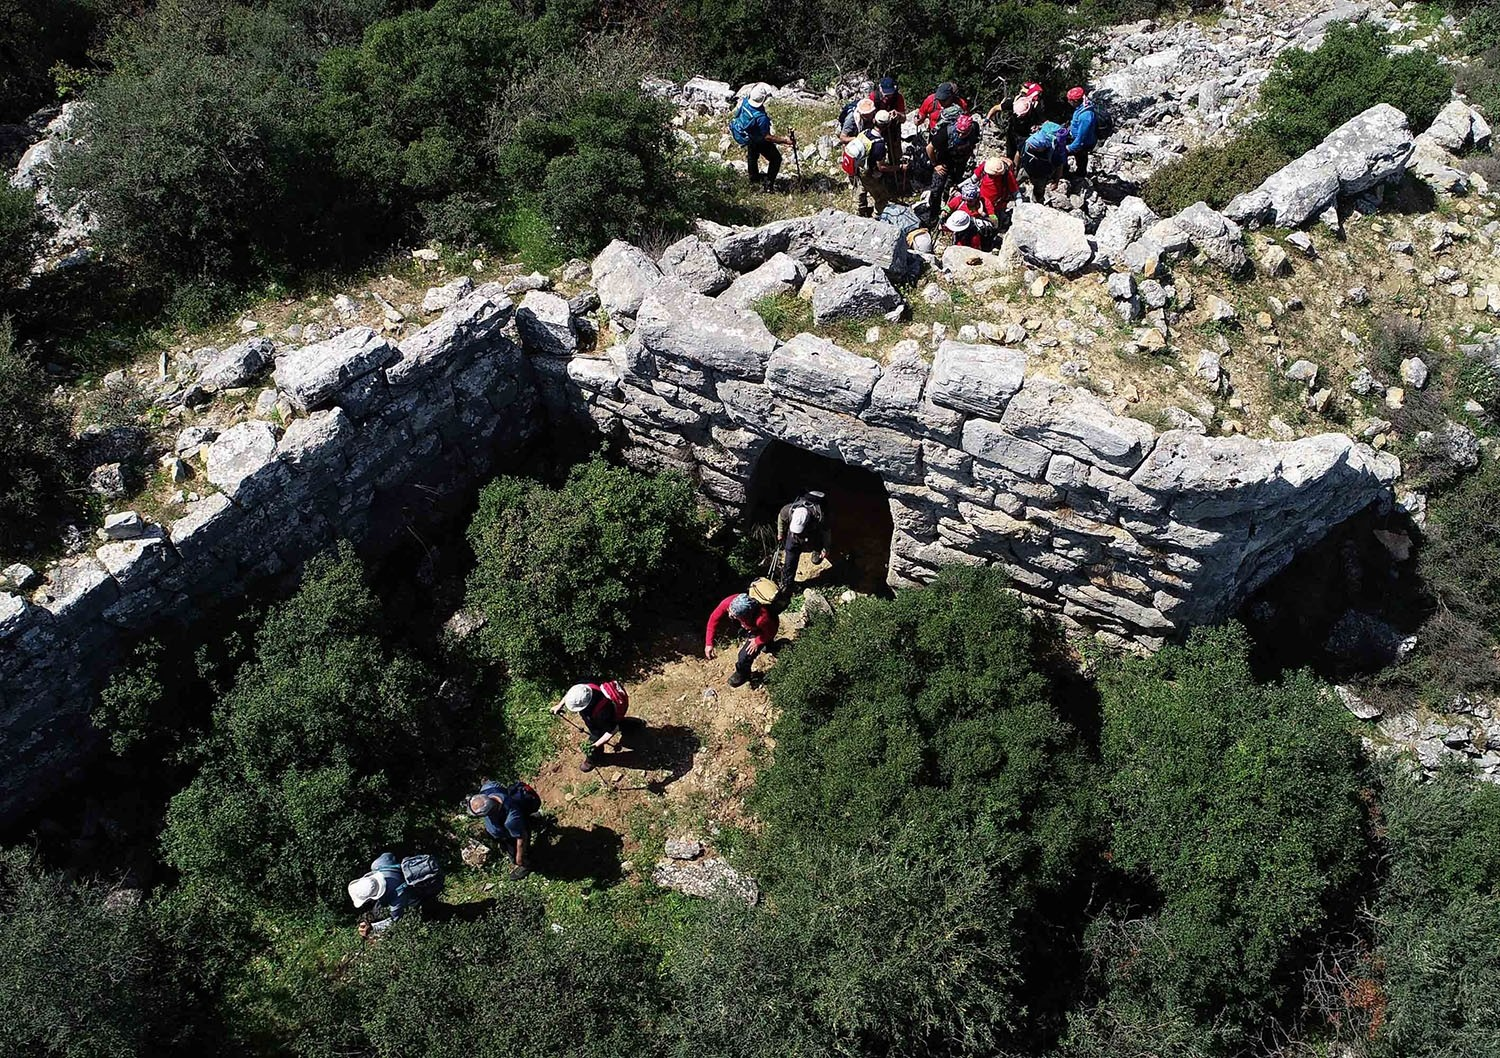 Explore 8,000 years of history on the Turkey's Ephesus-Mimas Route